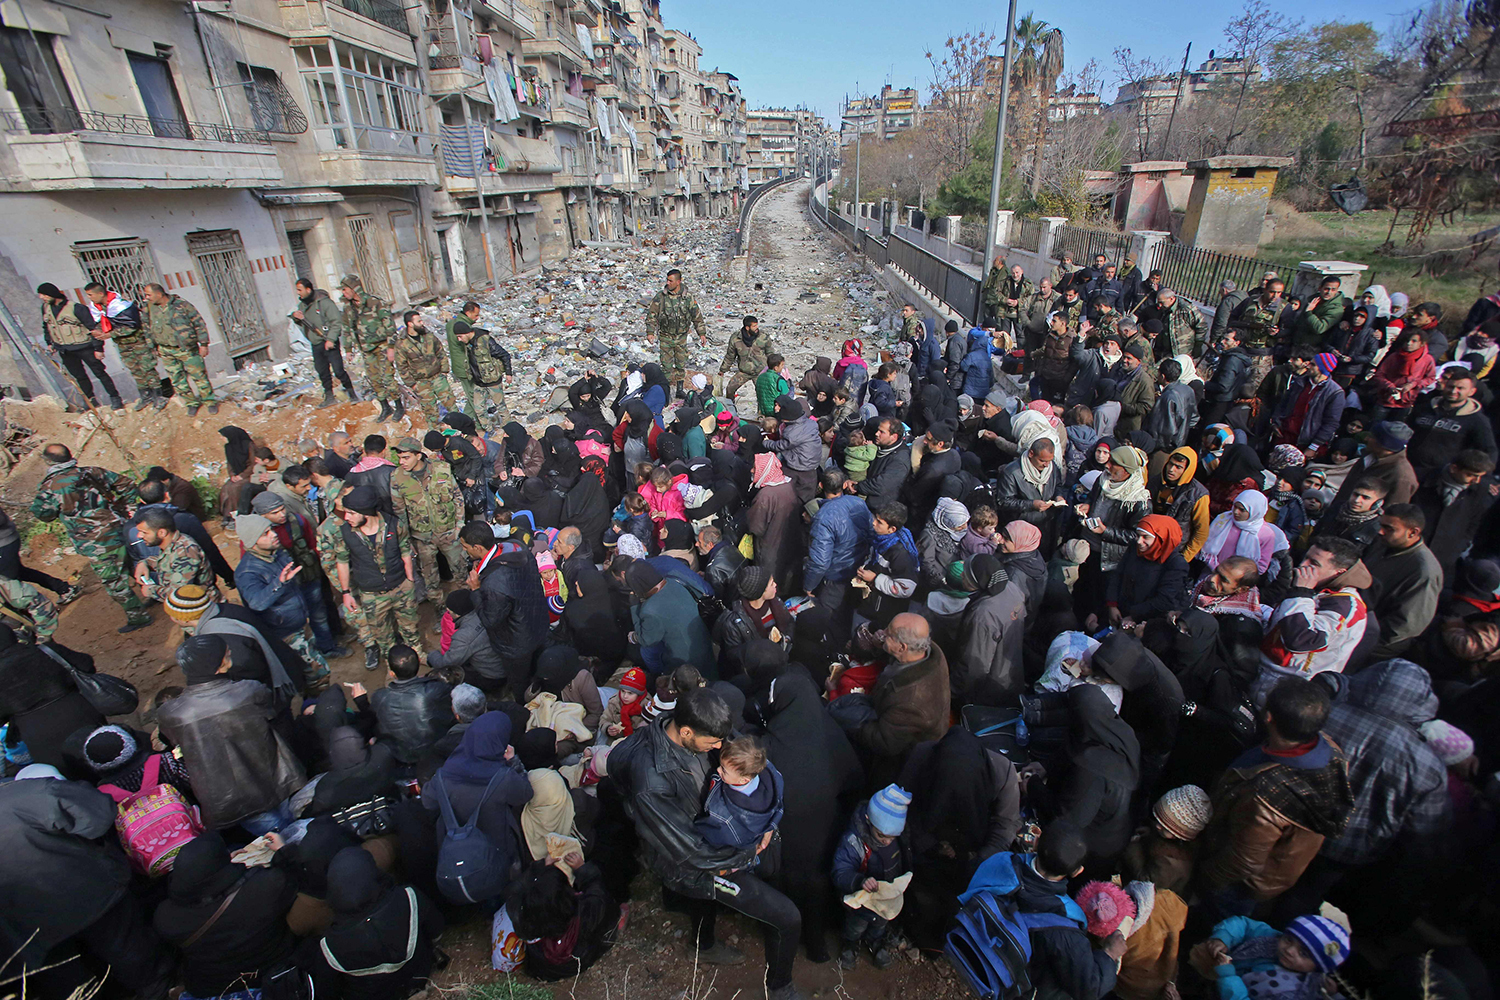 TOPSHOT - Syrian residents fleeing the violence gather at a checkpoint, manned by pro-government forces, in the Maysaloun neighbourhood of the northern embattled Syrian city of Aleppo on December 8, 2016. Syria's army battled to take more ground from rebels in Aleppo after President Bashar al-Assad said victory for his troops in the city would be a turning point in the war. / AFP PHOTO / Youssef KARWASHAN / TT / kod 444